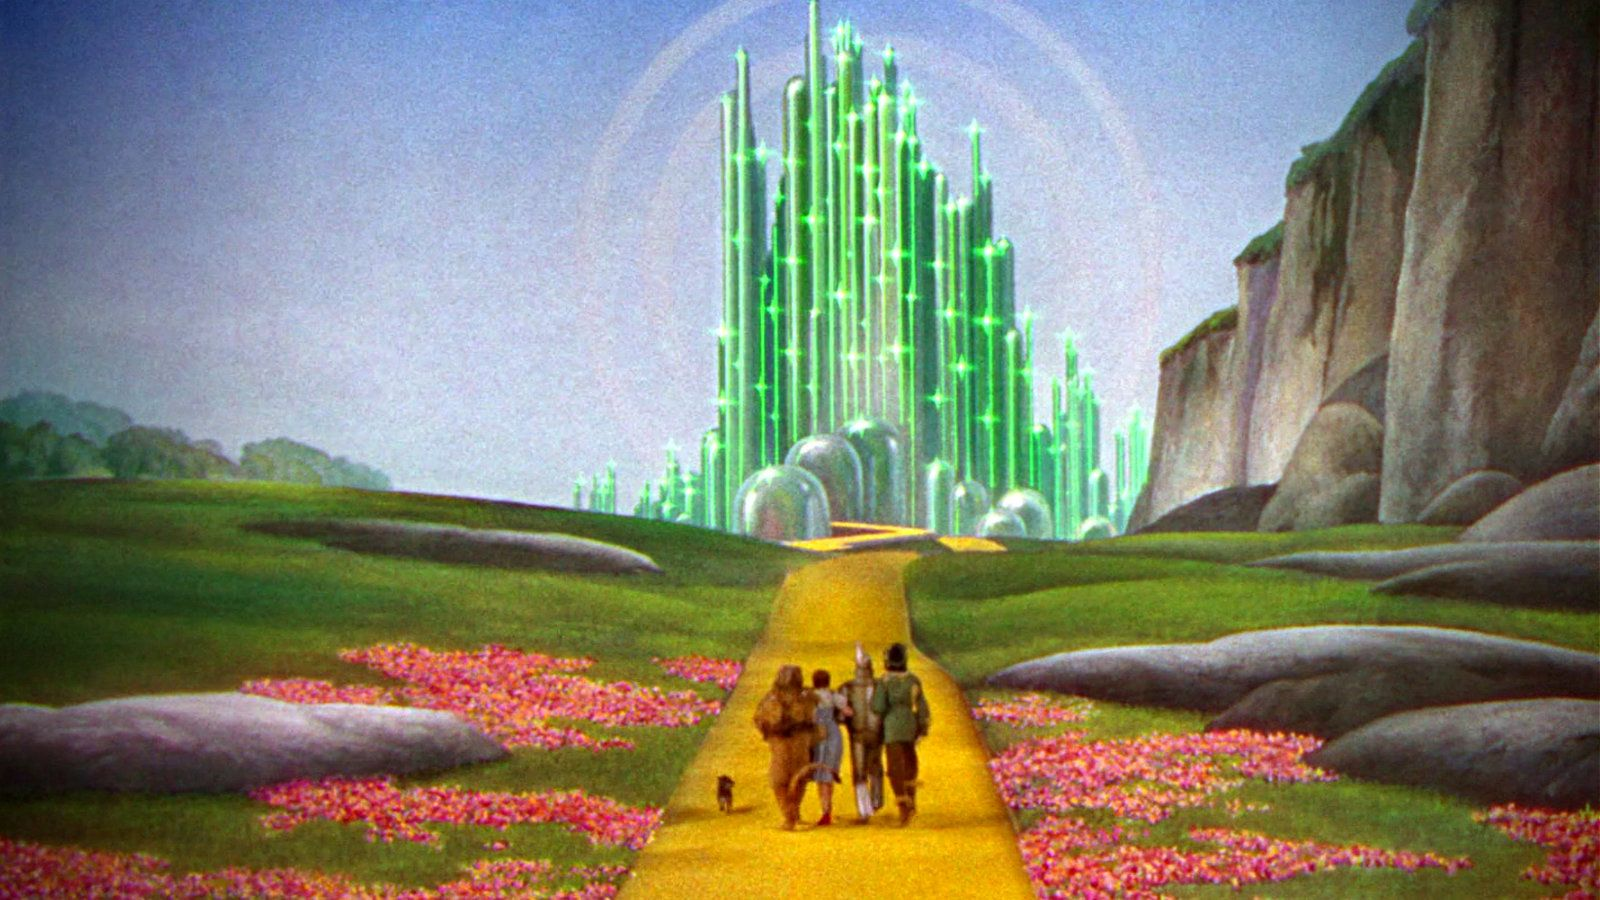 """Bert Lahr, Judy Garland, Jack Haley, and Ray Bolger in """"The Wizard of Oz"""" movie"""